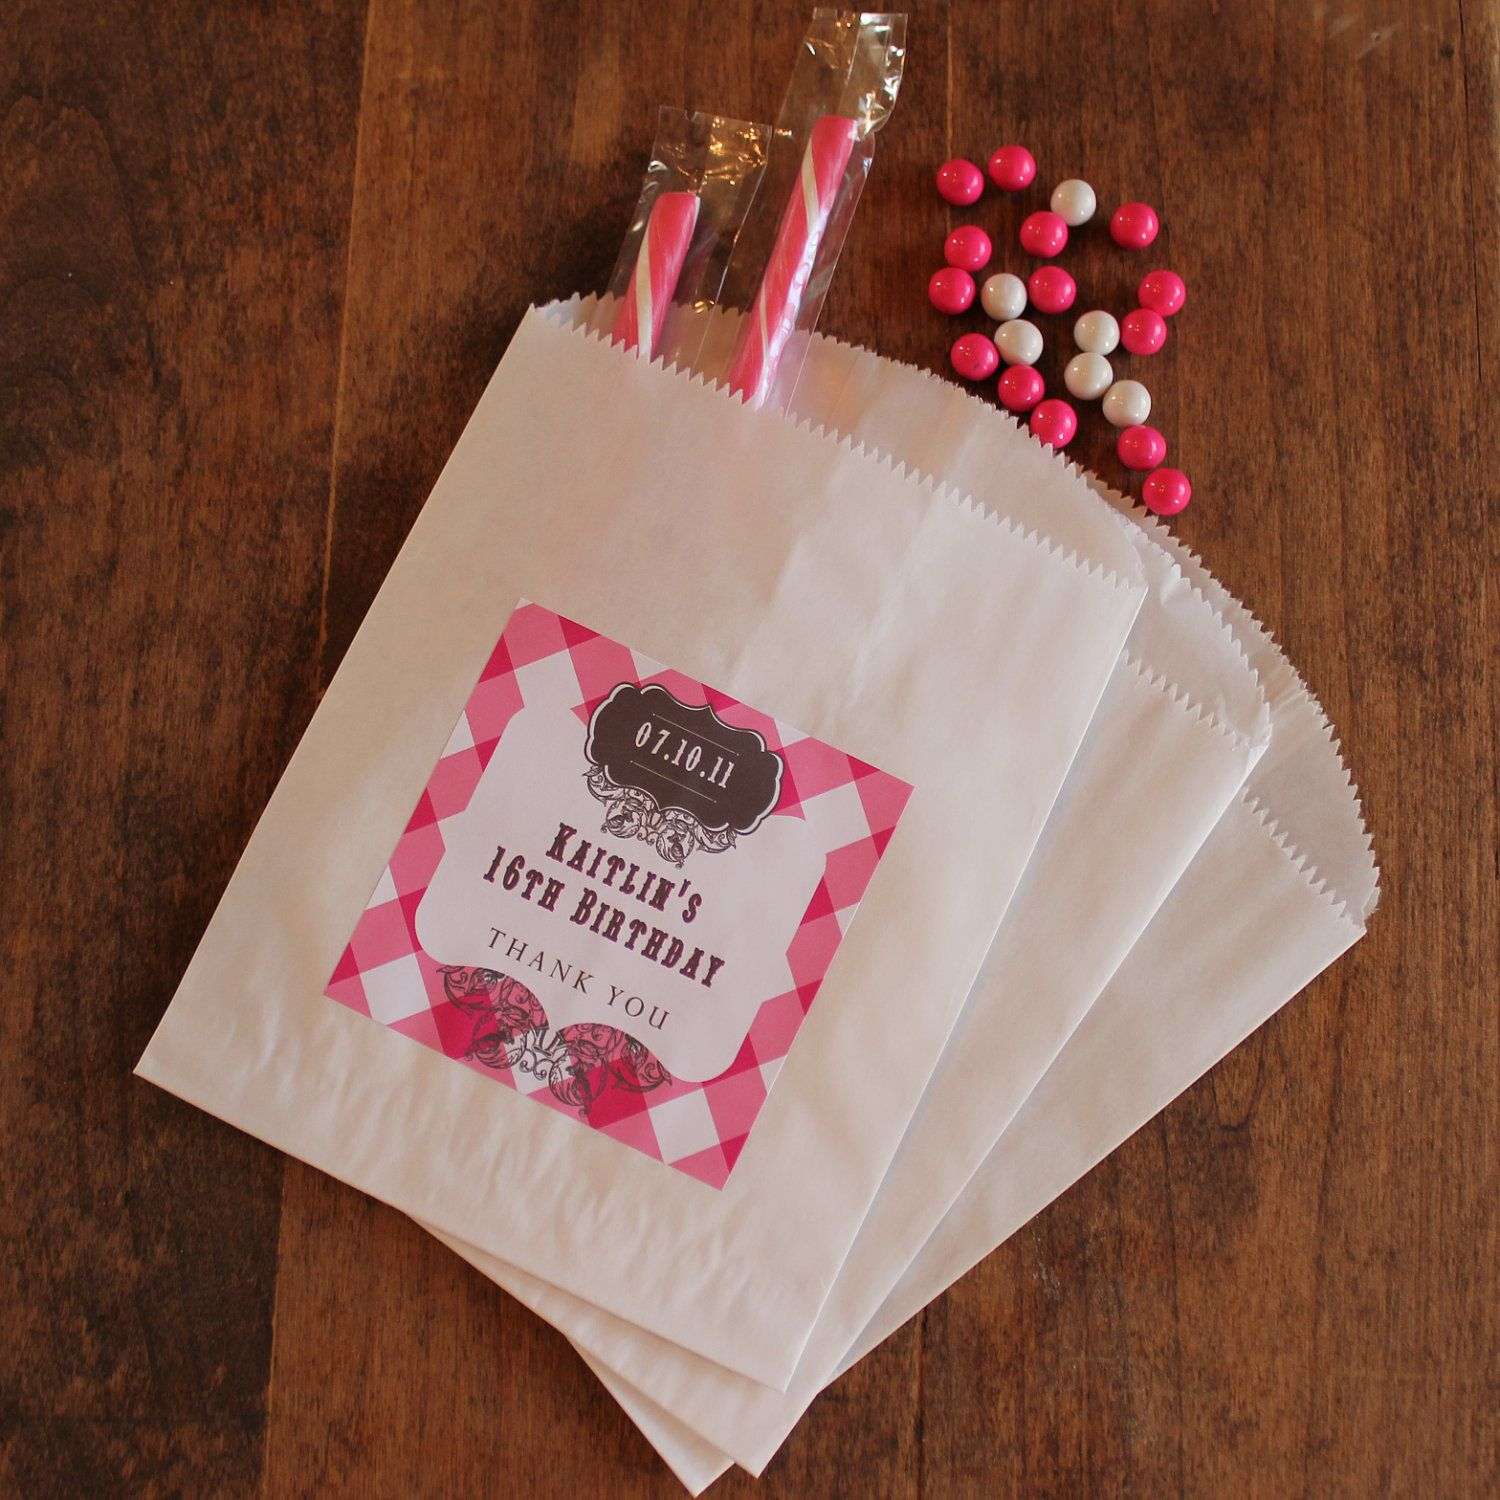 Candy buffet ideas for sweet sixteen - 24 Sweet 16 Party Favor Bags With Personalized Labels Kaitlin Design Any Color